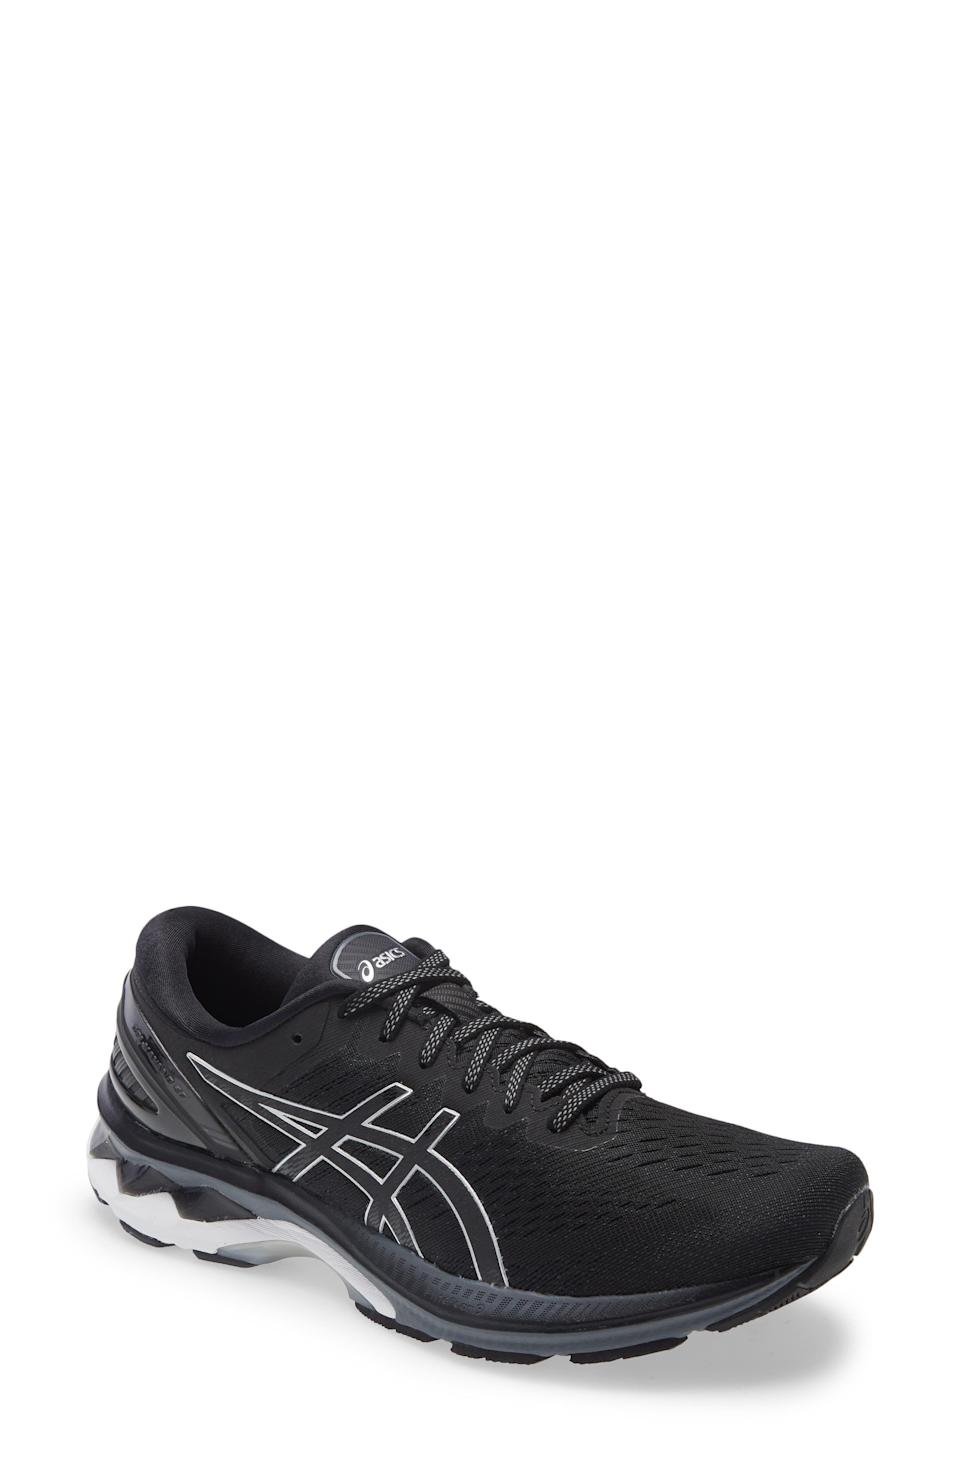 """<p><strong>ASICS</strong></p><p>nordstrom.com</p><p><a href=""""https://go.redirectingat.com?id=74968X1596630&url=https%3A%2F%2Fwww.nordstrom.com%2Fs%2Fasics-gel-kayano-27-running-shoe-men%2F5784739&sref=https%3A%2F%2Fwww.menshealth.com%2Fstyle%2Fg37081969%2Fnordstroms-anniversary-sale-best-sneakers%2F"""" rel=""""nofollow noopener"""" target=""""_blank"""" data-ylk=""""slk:BUY IT HERE"""" class=""""link rapid-noclick-resp"""">BUY IT HERE</a></p><p><del>$160<br></del><strong>$99.90</strong></p><p>There's a reason why ASICS' GEL-Kayano 27 is one of the brand's most popular sneakers. The GEL detailing in the sole absorbs shock, while the FlyteFoam Propel cushion will give a major pep to your step. And, if you want a pair that will hold up over time, you're in luck: ASICS' High Abrasion Rubber withstands wear and tear.</p>"""